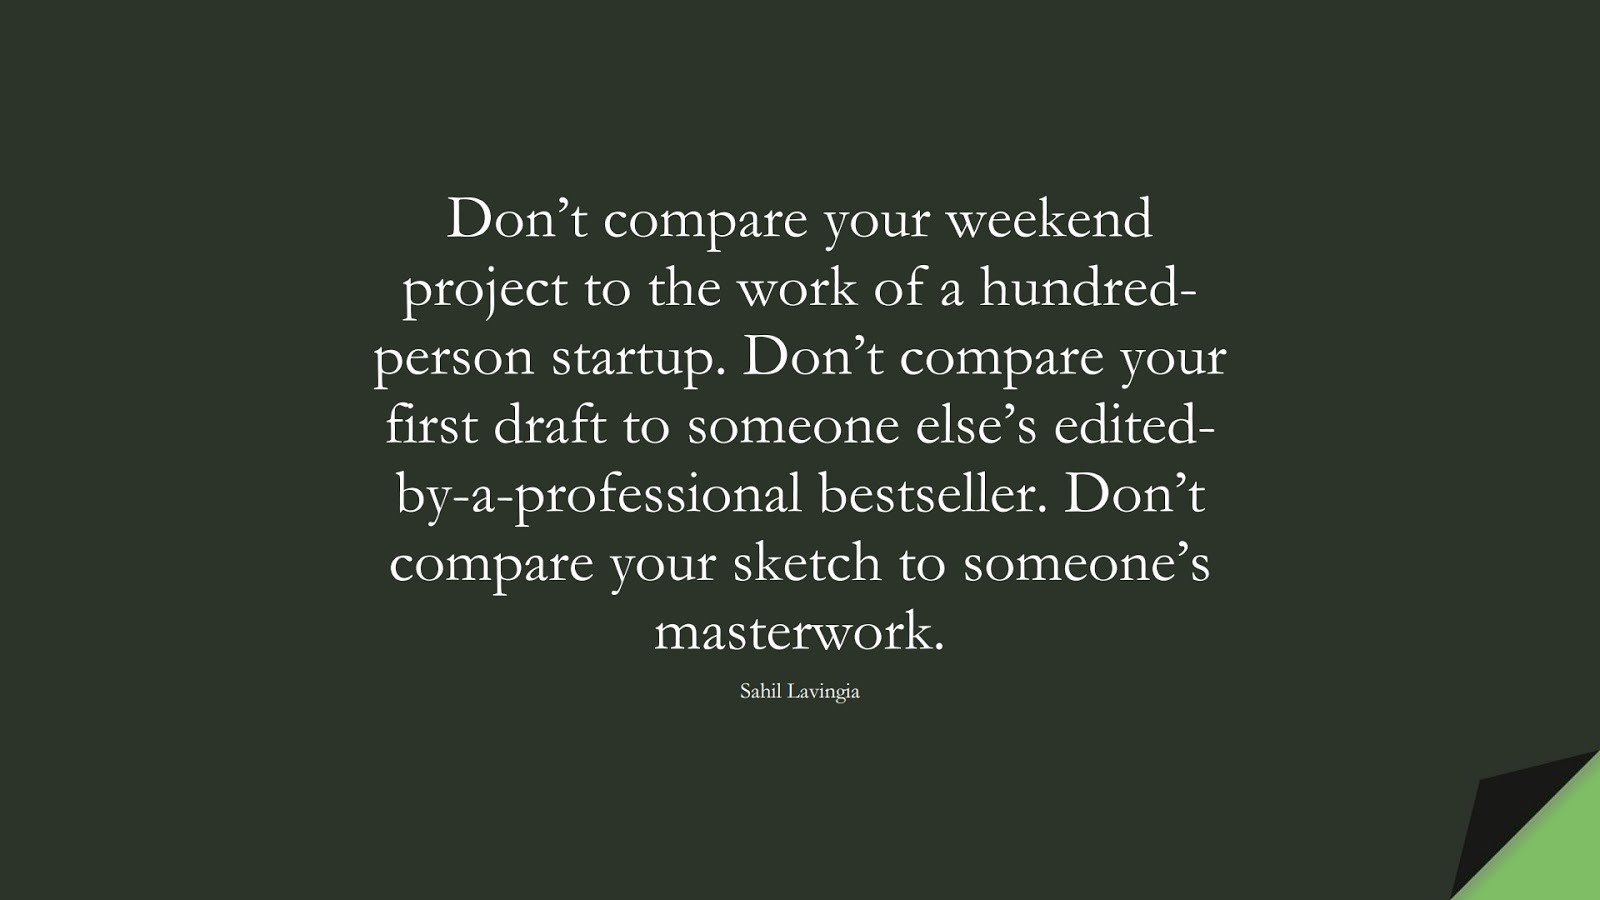 Don't compare your weekend project to the work of a hundred-person startup. Don't compare your first draft to someone else's edited-by-a-professional bestseller. Don't compare your sketch to someone's masterwork. (Sahil Lavingia);  #SelfEsteemQuotes